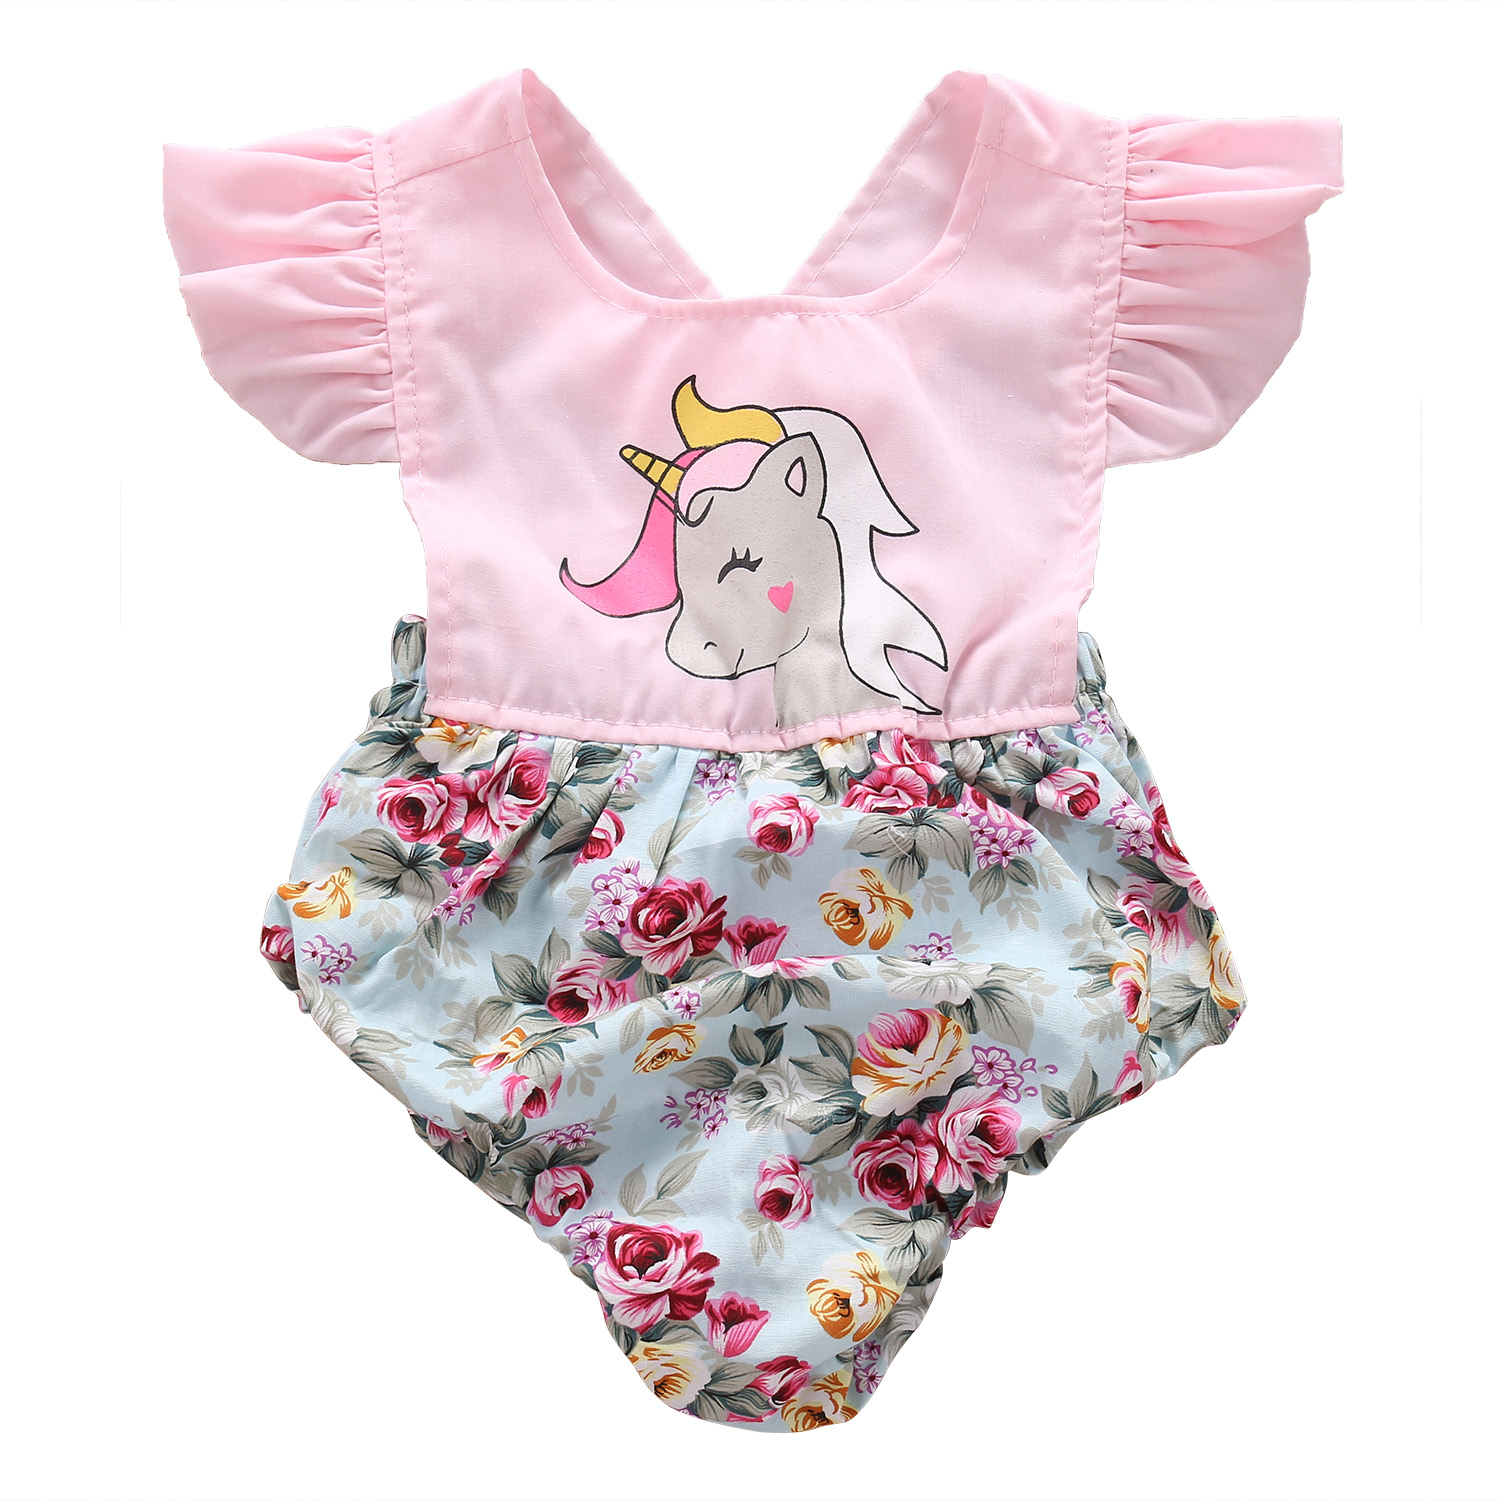 Infant Baby Girls Floral Polka Dot Romper Clothes Ruffles Cartoon Patchwork Jumpsuit Outfits Summer Cotton Clothes Pink 0-24M